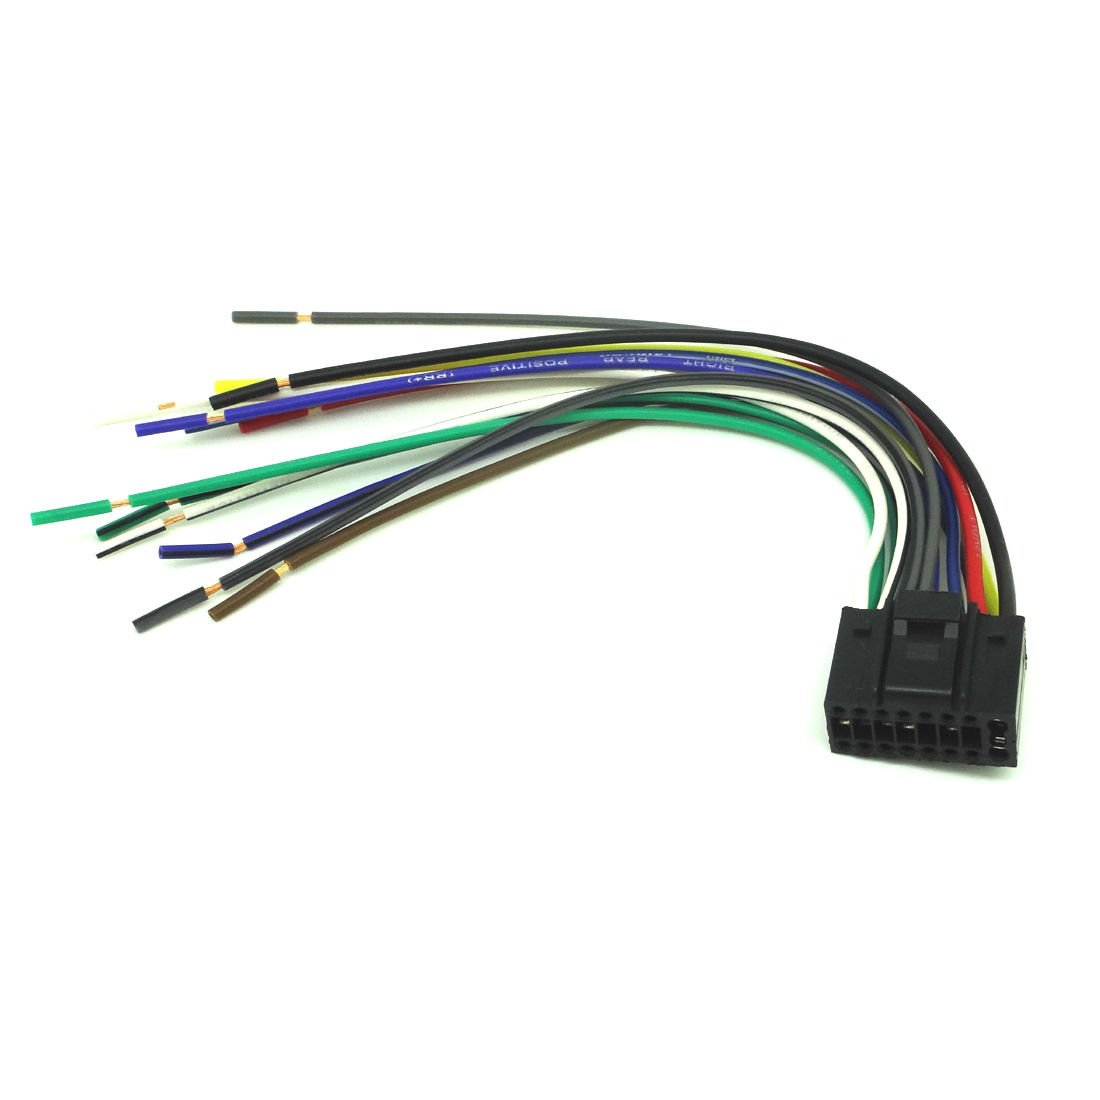 amazon com: conpus 16-pin radio car audio stereo wire harness for kenwood  kdc-152 player kdc-222 ad342: car electronics